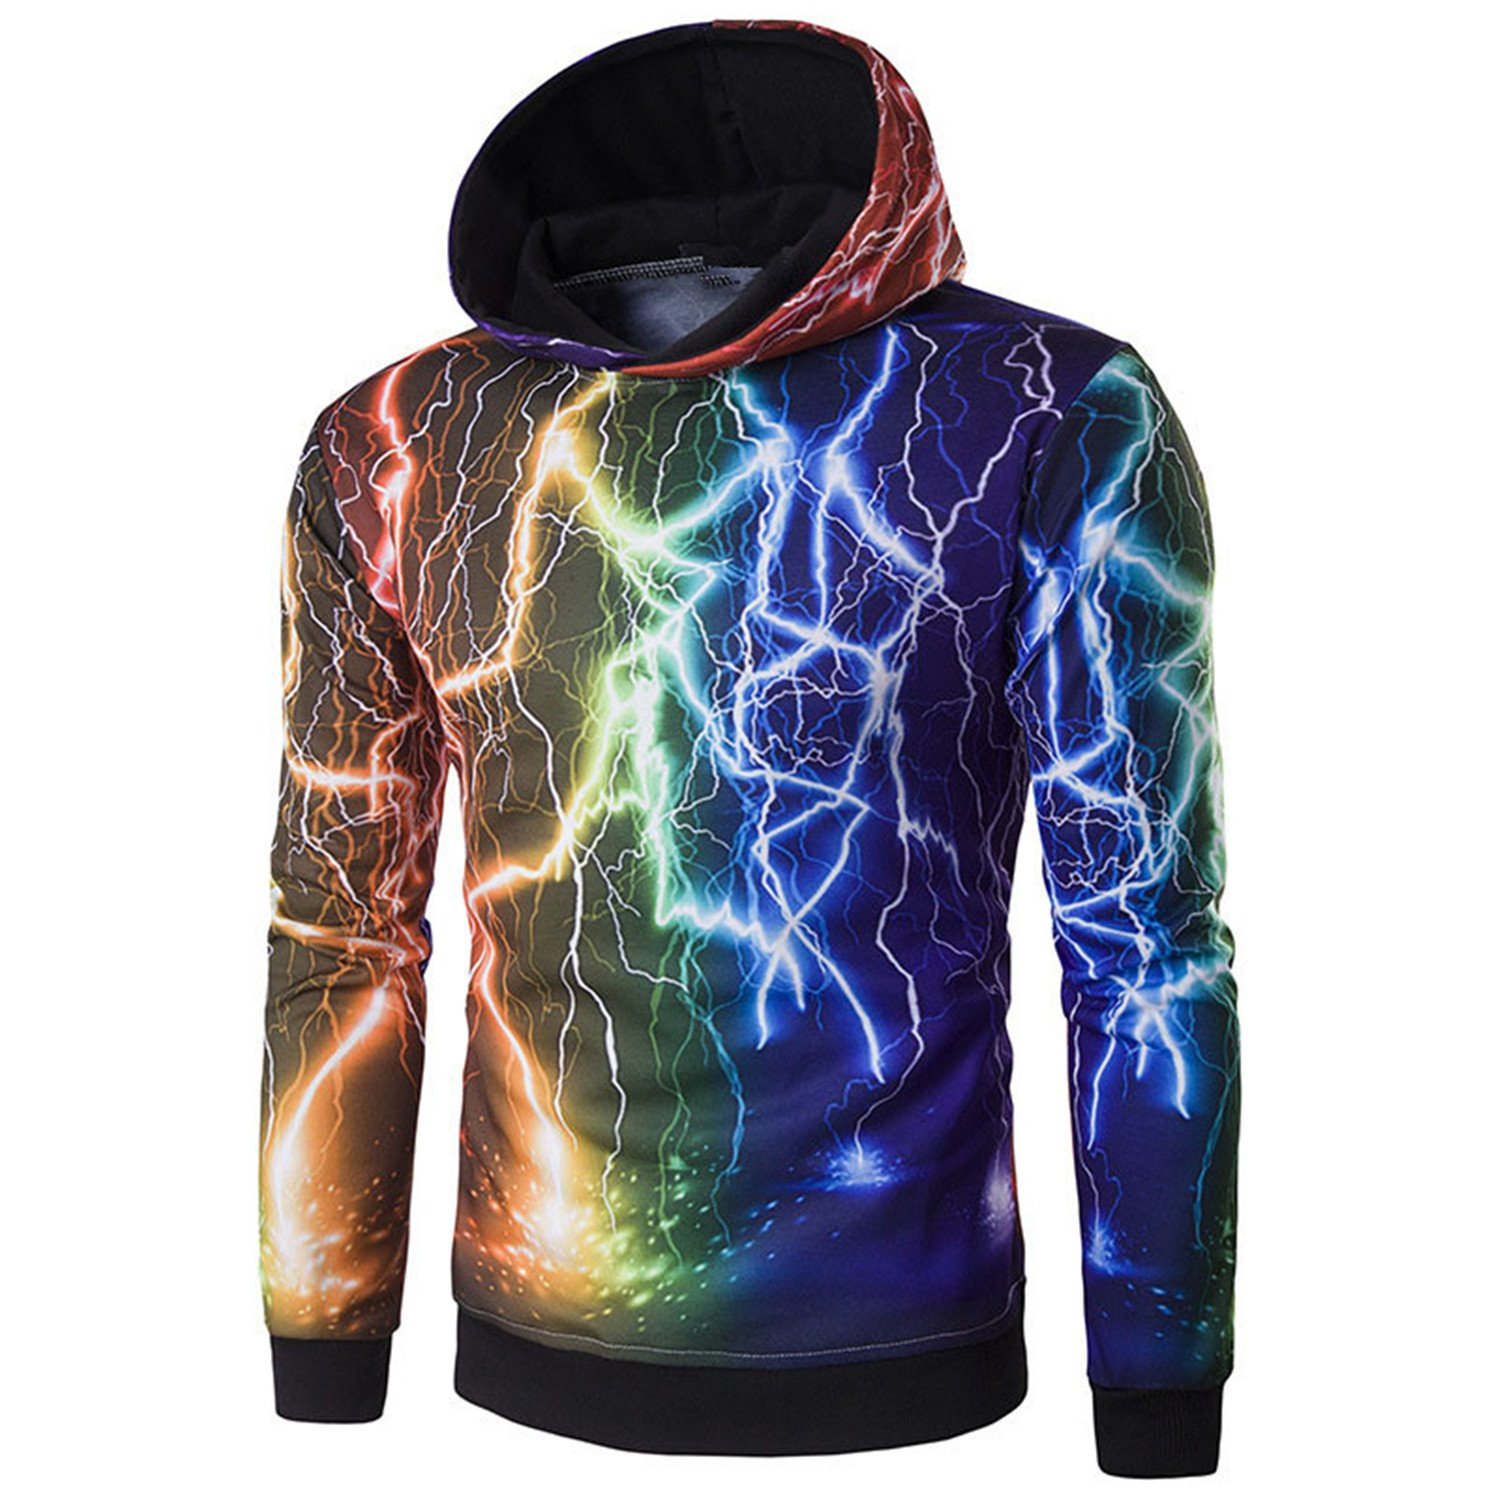 Matterin Christiao Top Fashion New Mens 3D Hoodies Sweatshirts Pullover Sudaderas Hombre Casual Jacket Coat at Amazon Mens Clothing store: